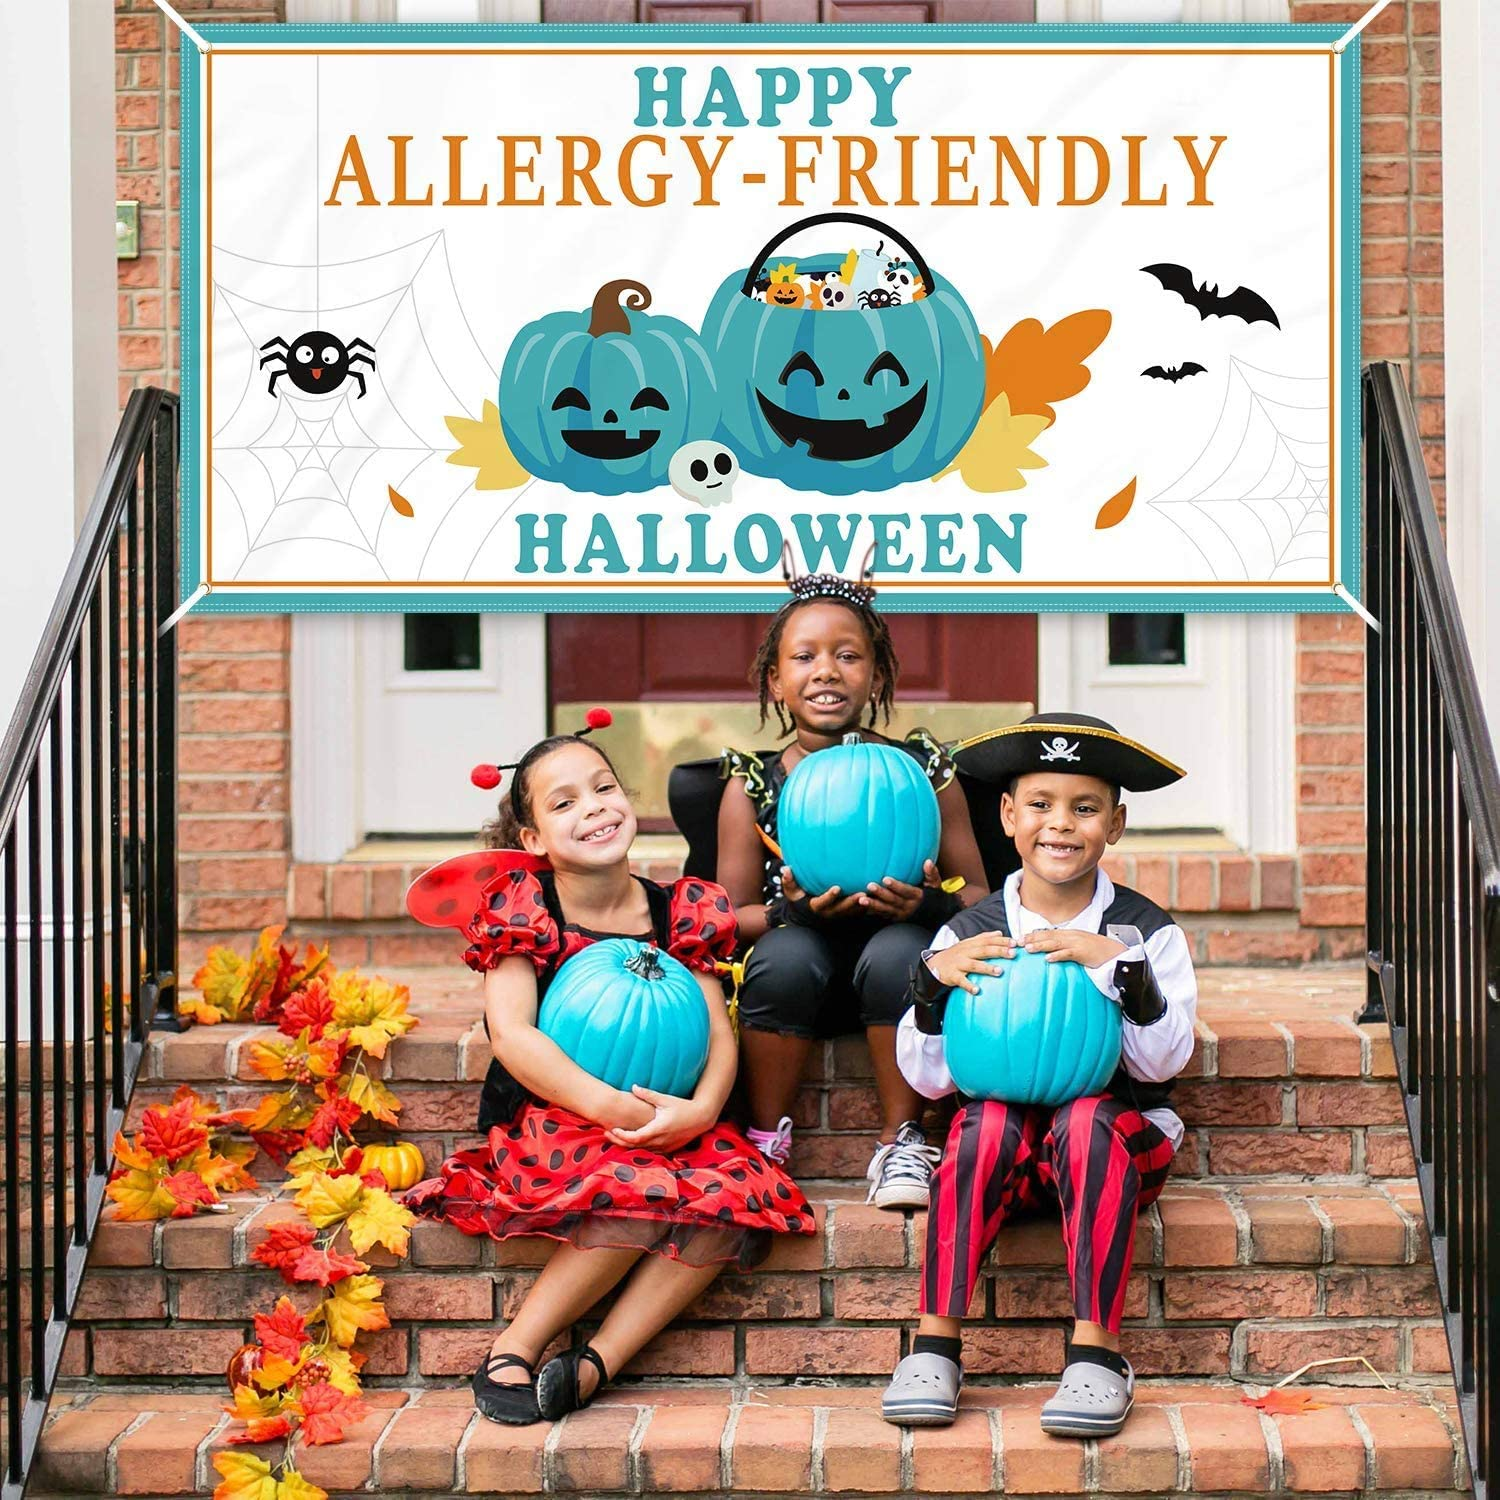 Teal Pumpkin Project Fabric Banner, Happy Allergy-Friendly Halloween Yard Signs Trinkets and Treats Food Allergy Awareness Garden Porch Decor